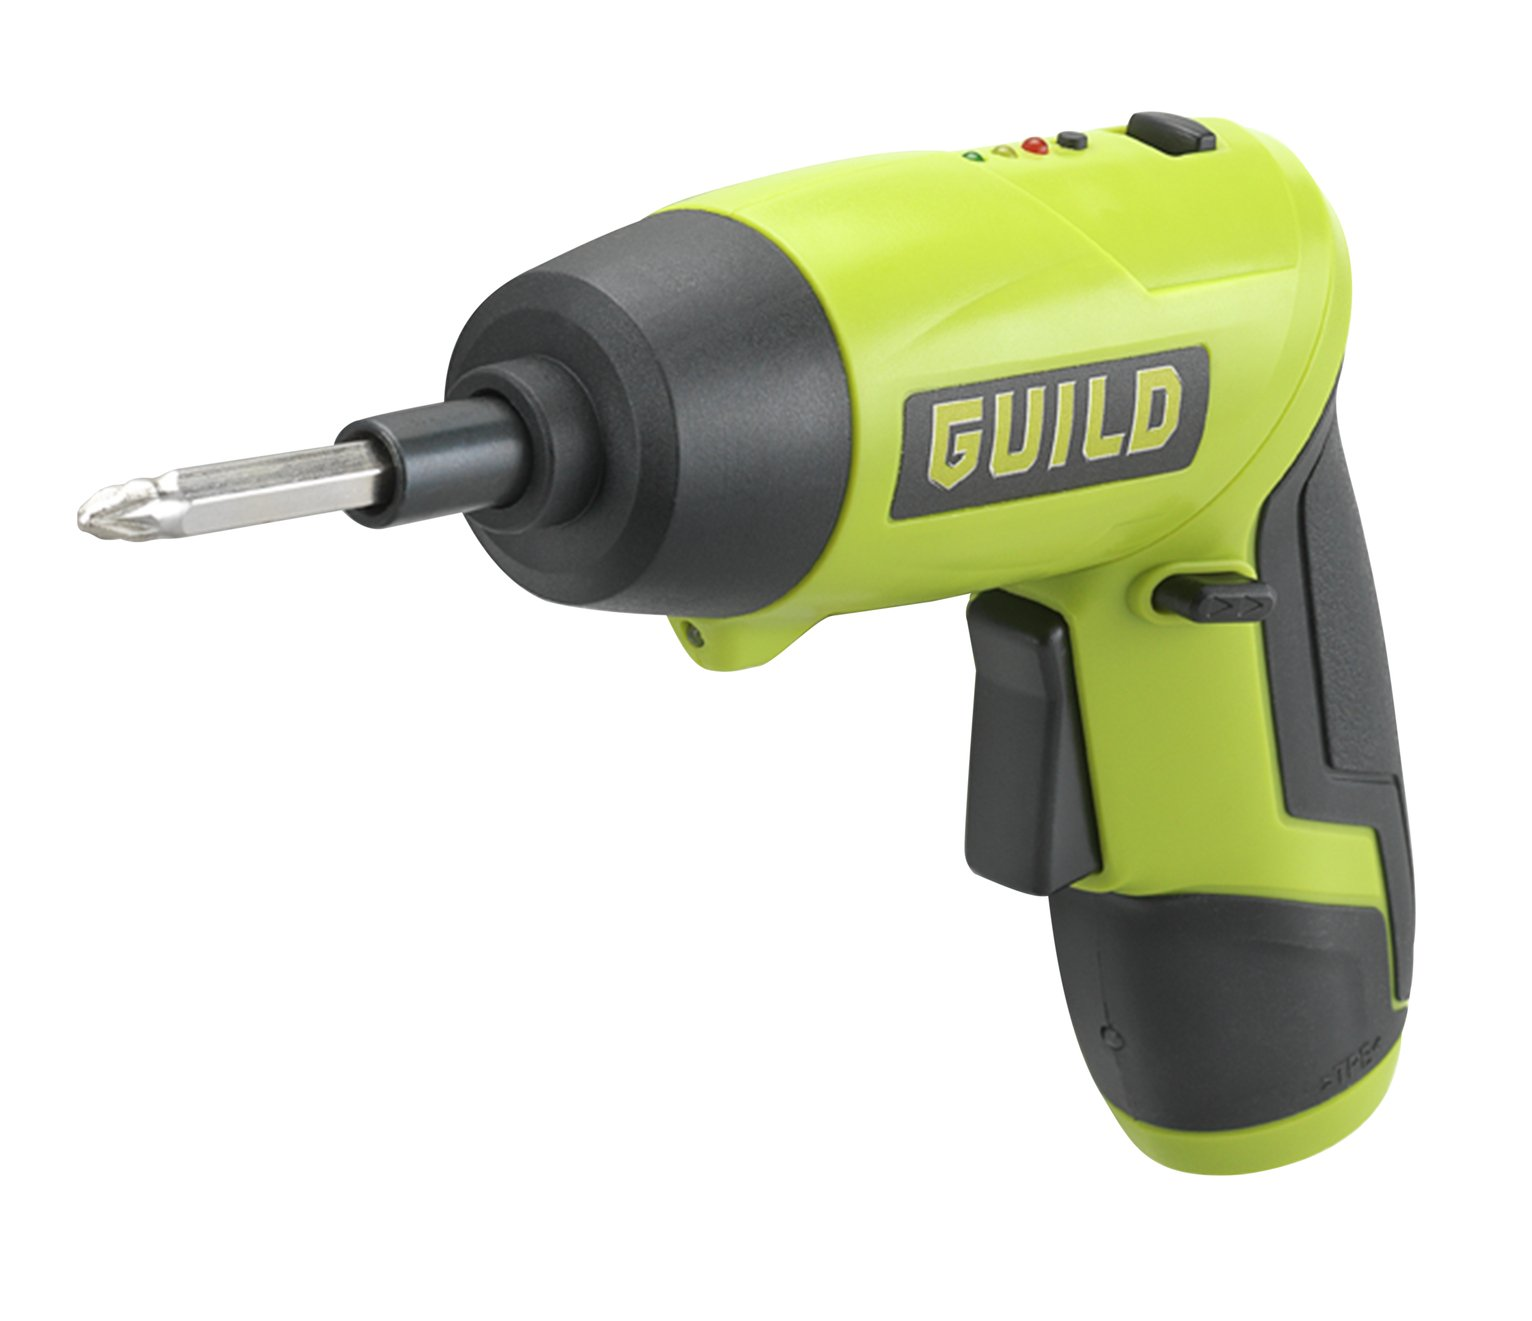 Guild Fastcharge Twist Li-ion Screwdriver – 3.6V